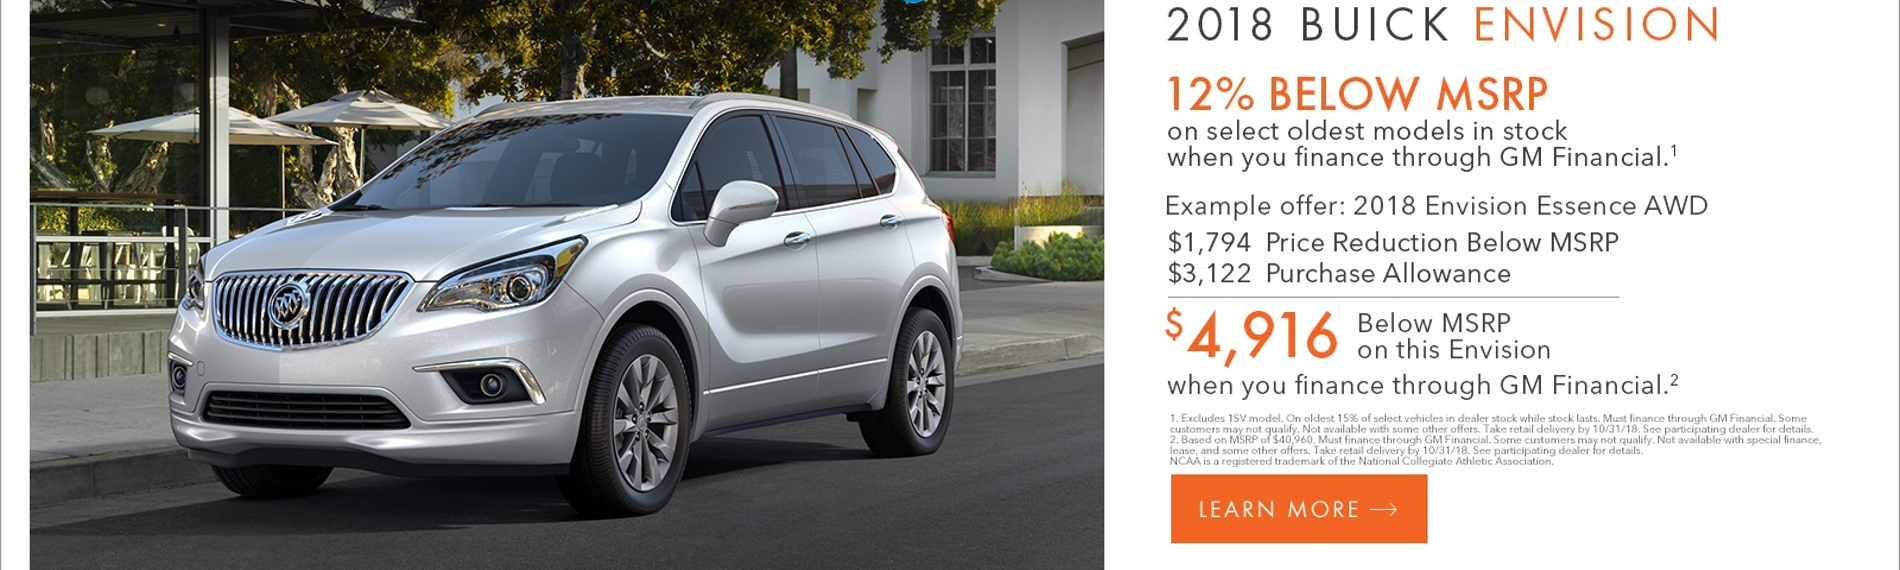 18 Buick Envision